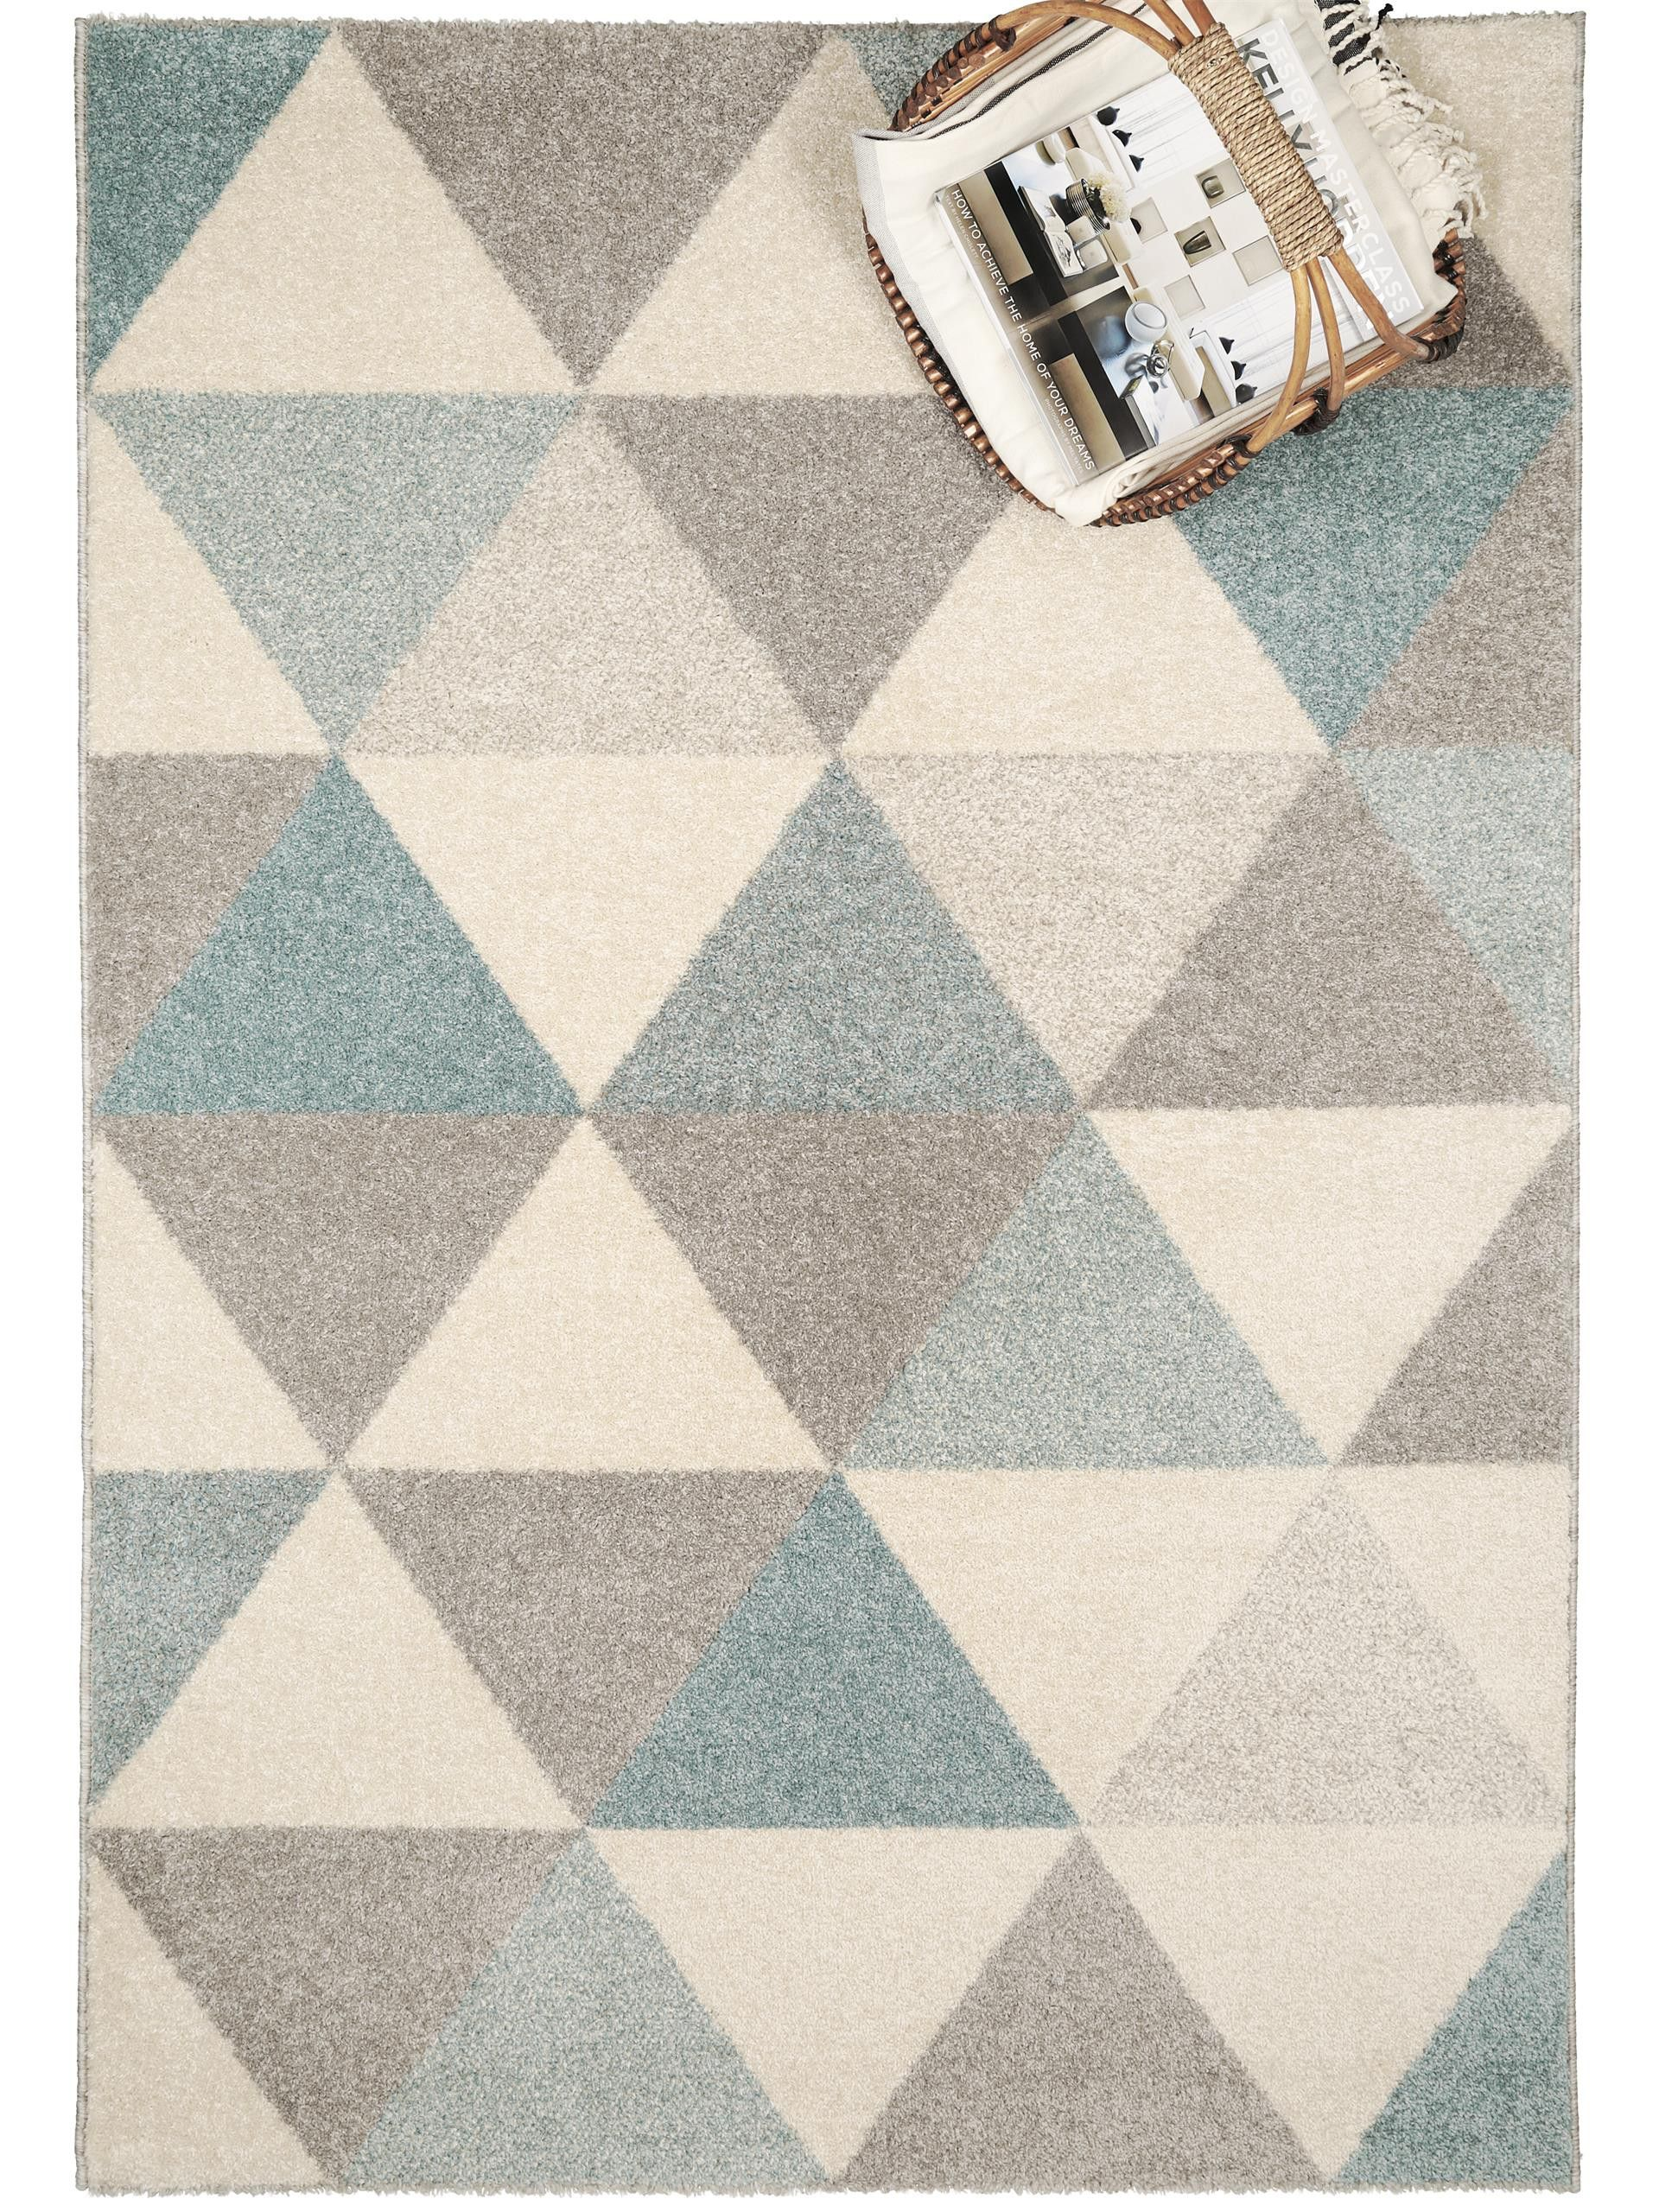 Benuta Teppich Casa Türkis Teppich Pastel Geomet Türkis Ideas For The House Modern Rugs